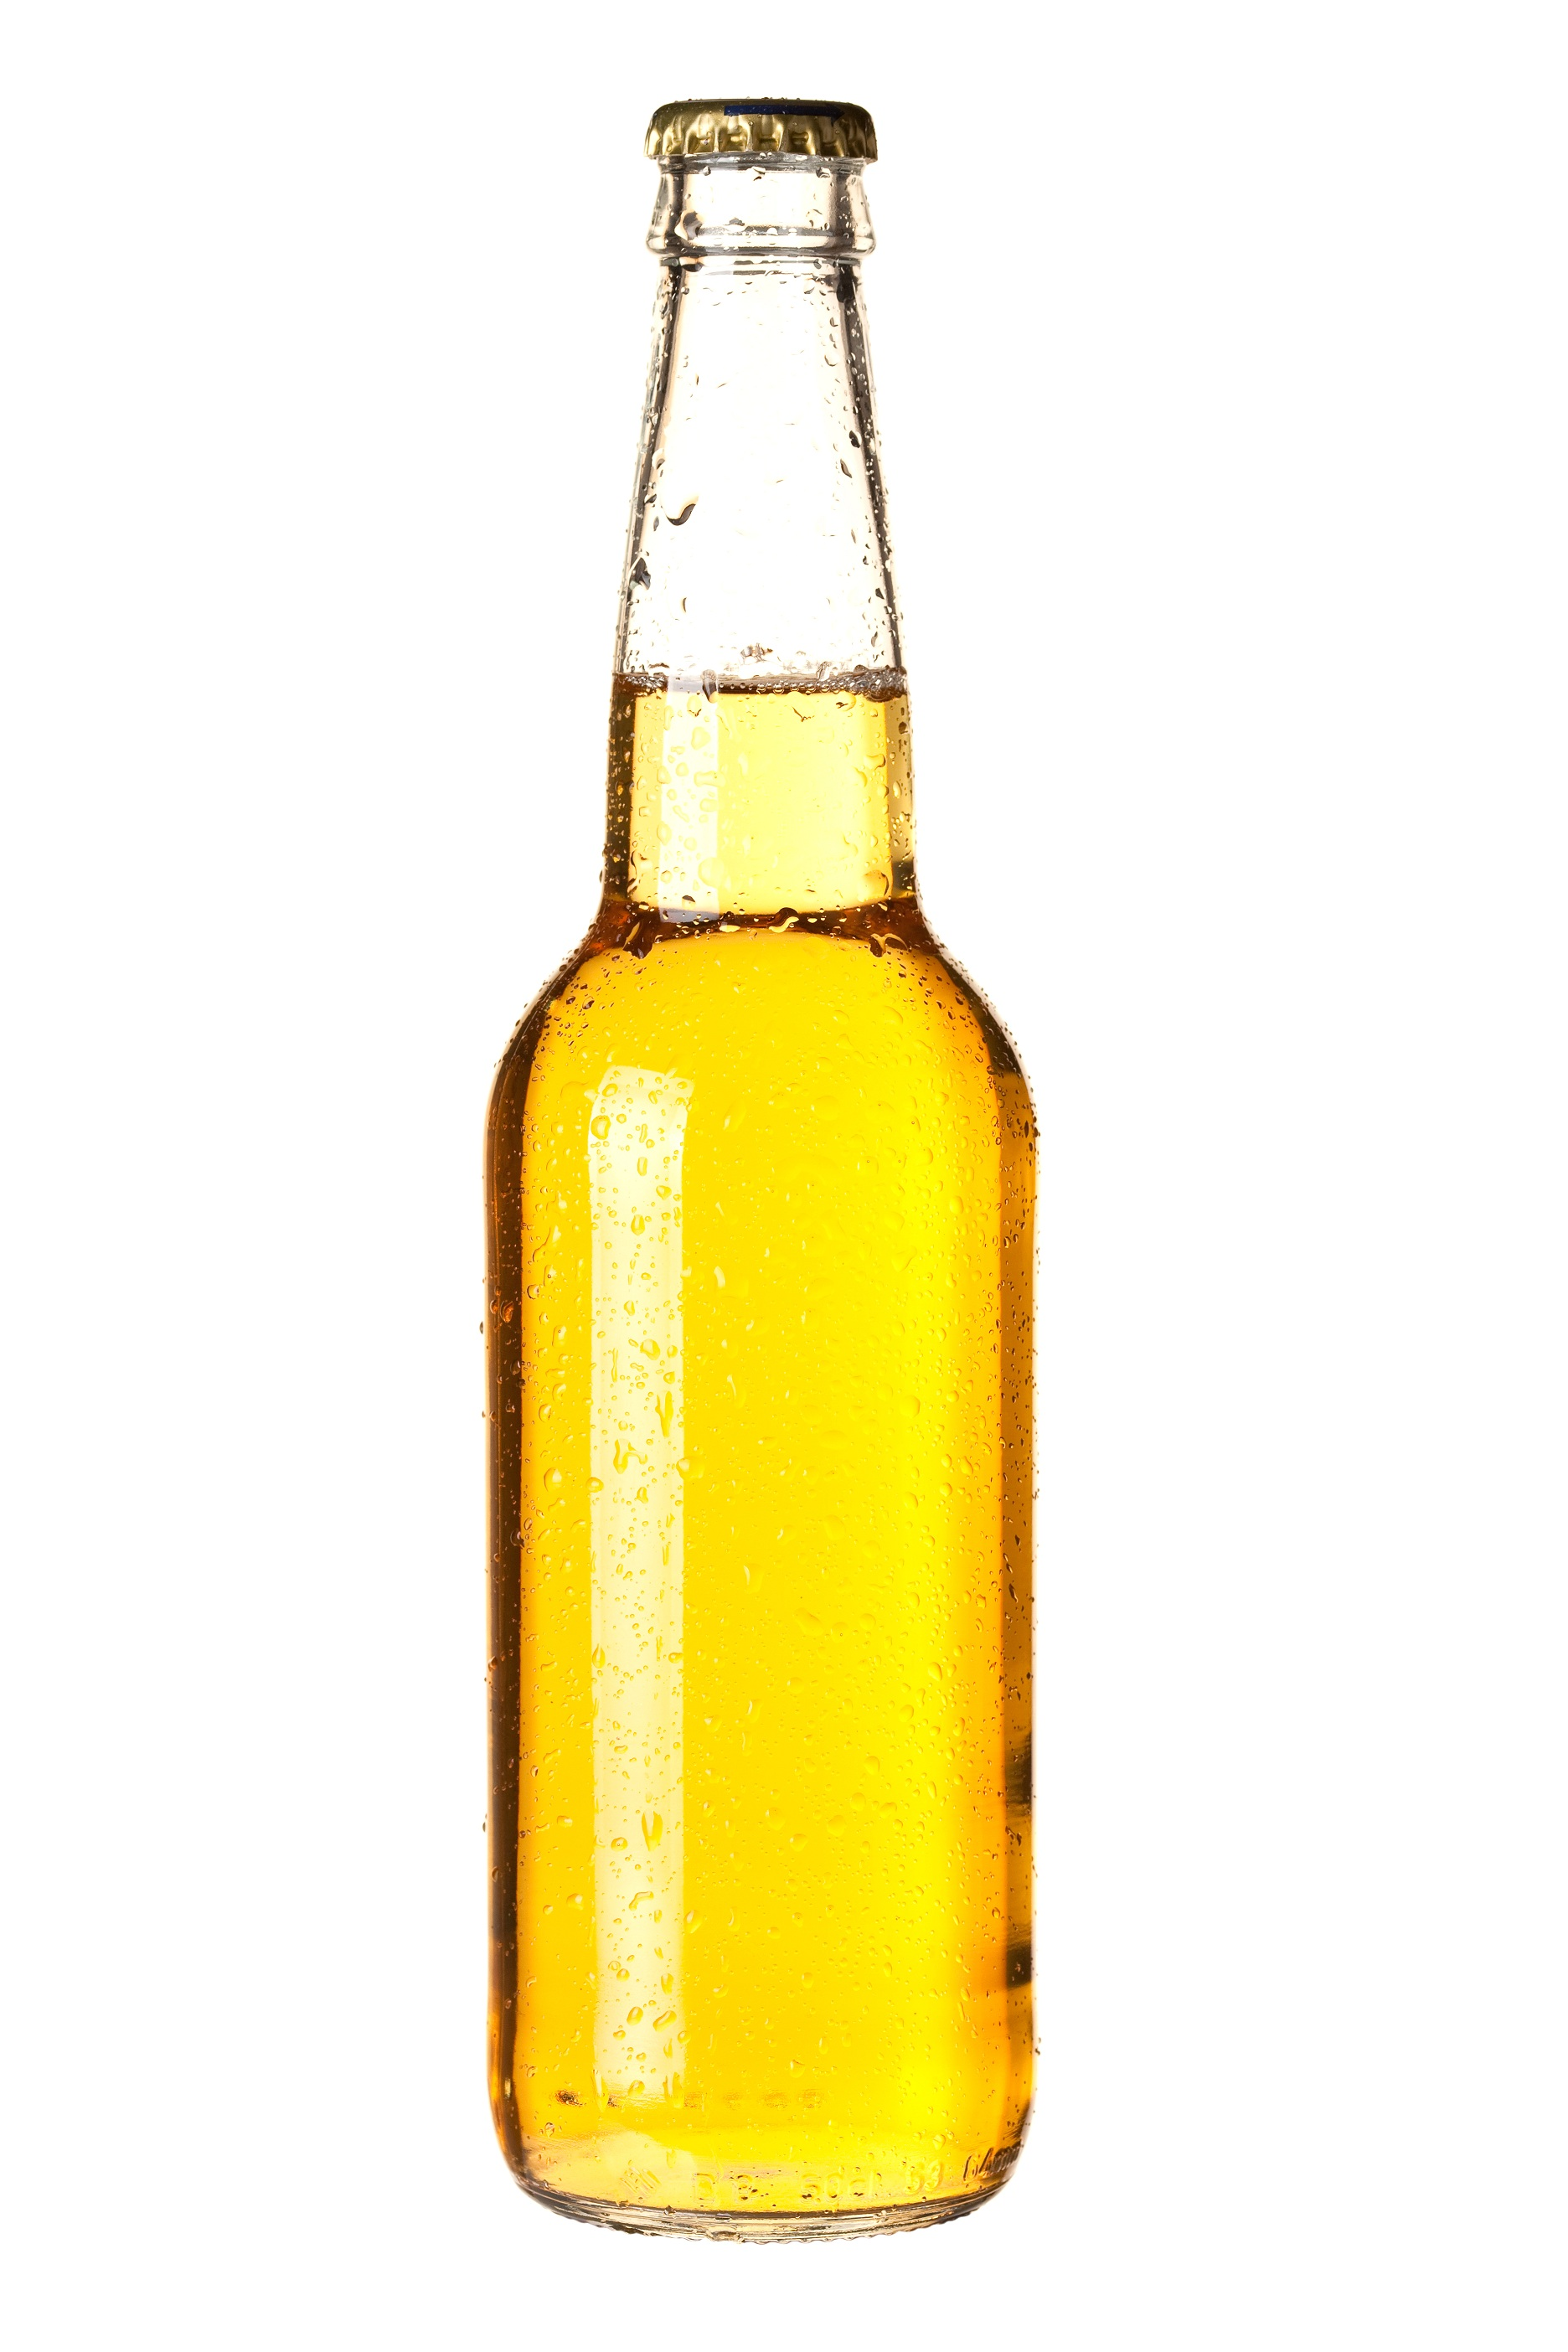 Free Shampoo Bottle Png, Download Free Clip Art, Free Clip Art on.